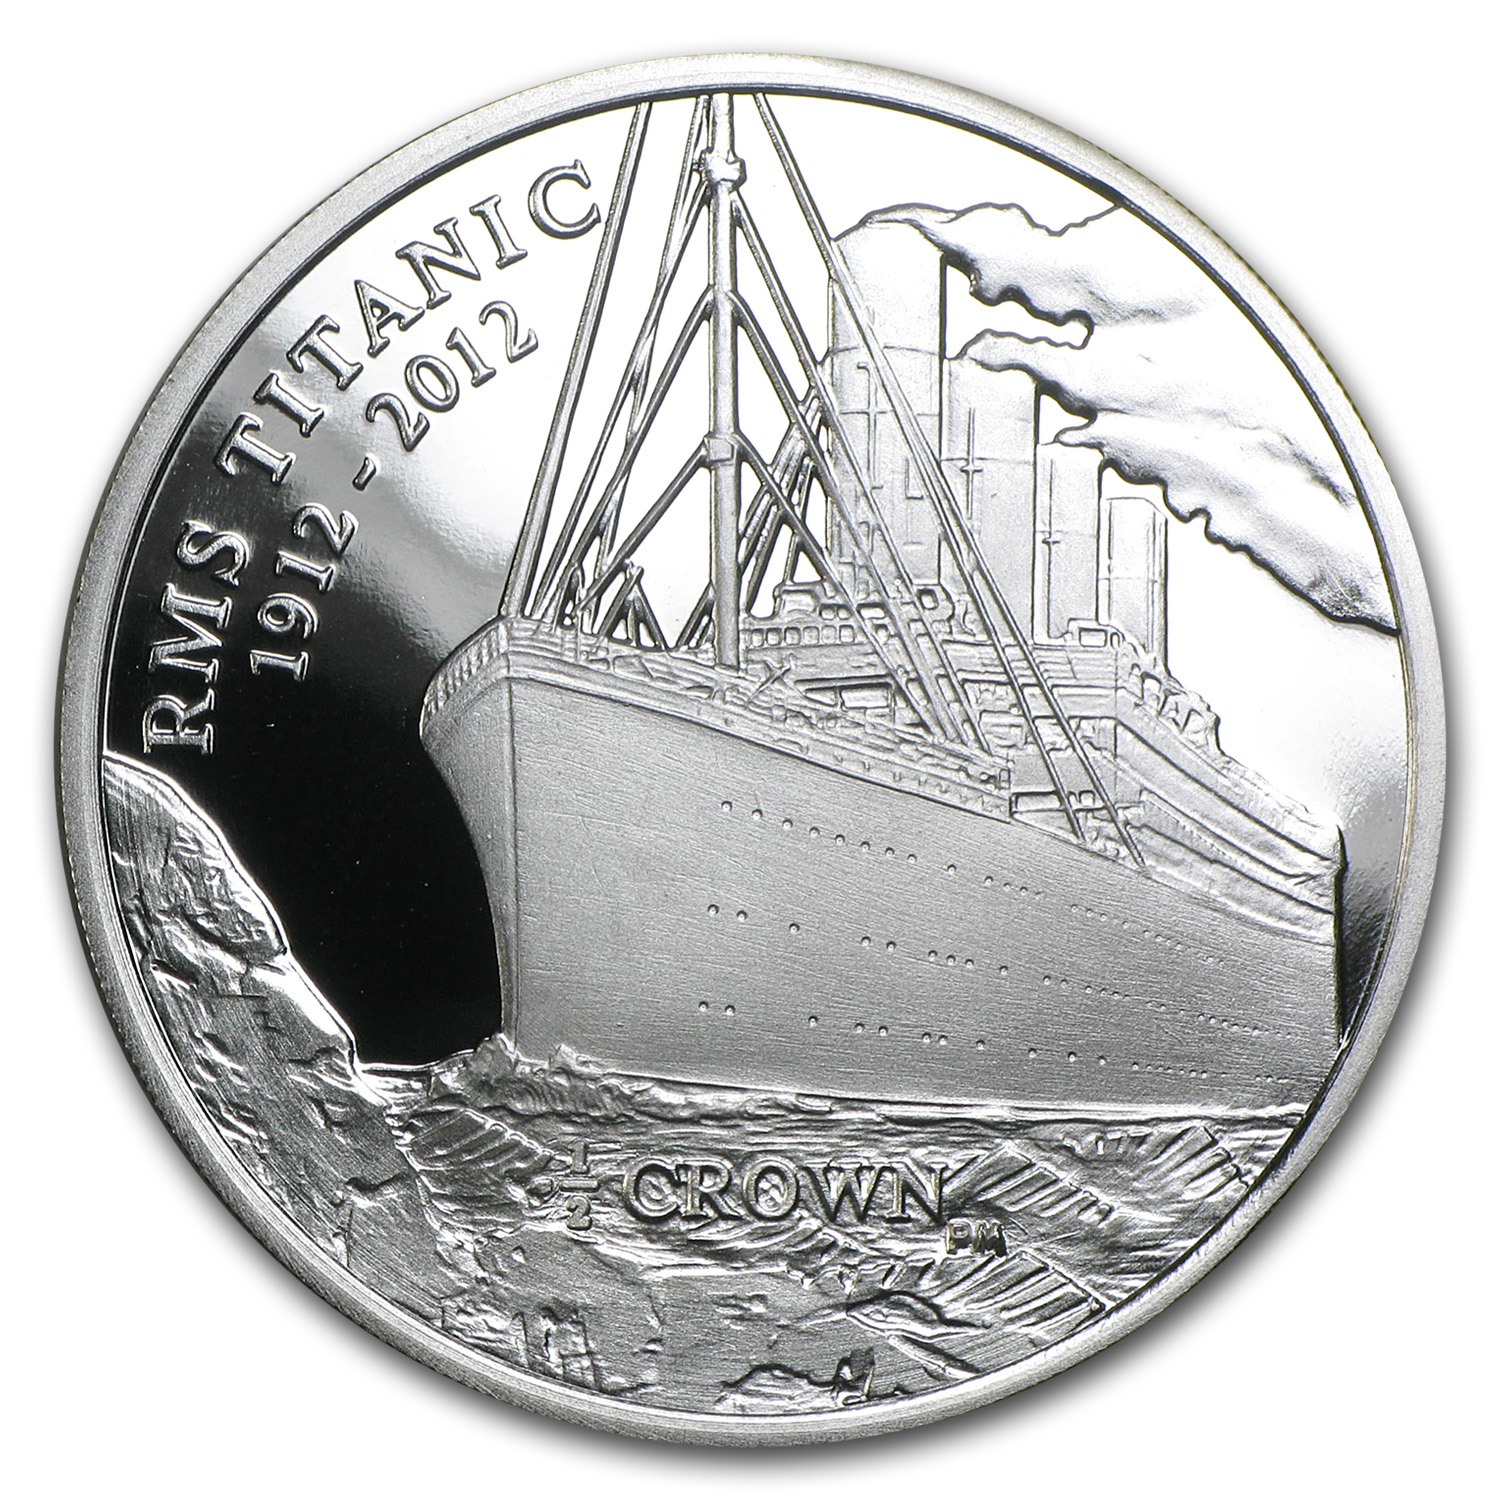 2014 Isle of Man 1/2 Crown Silver Titanic at Sea Proof